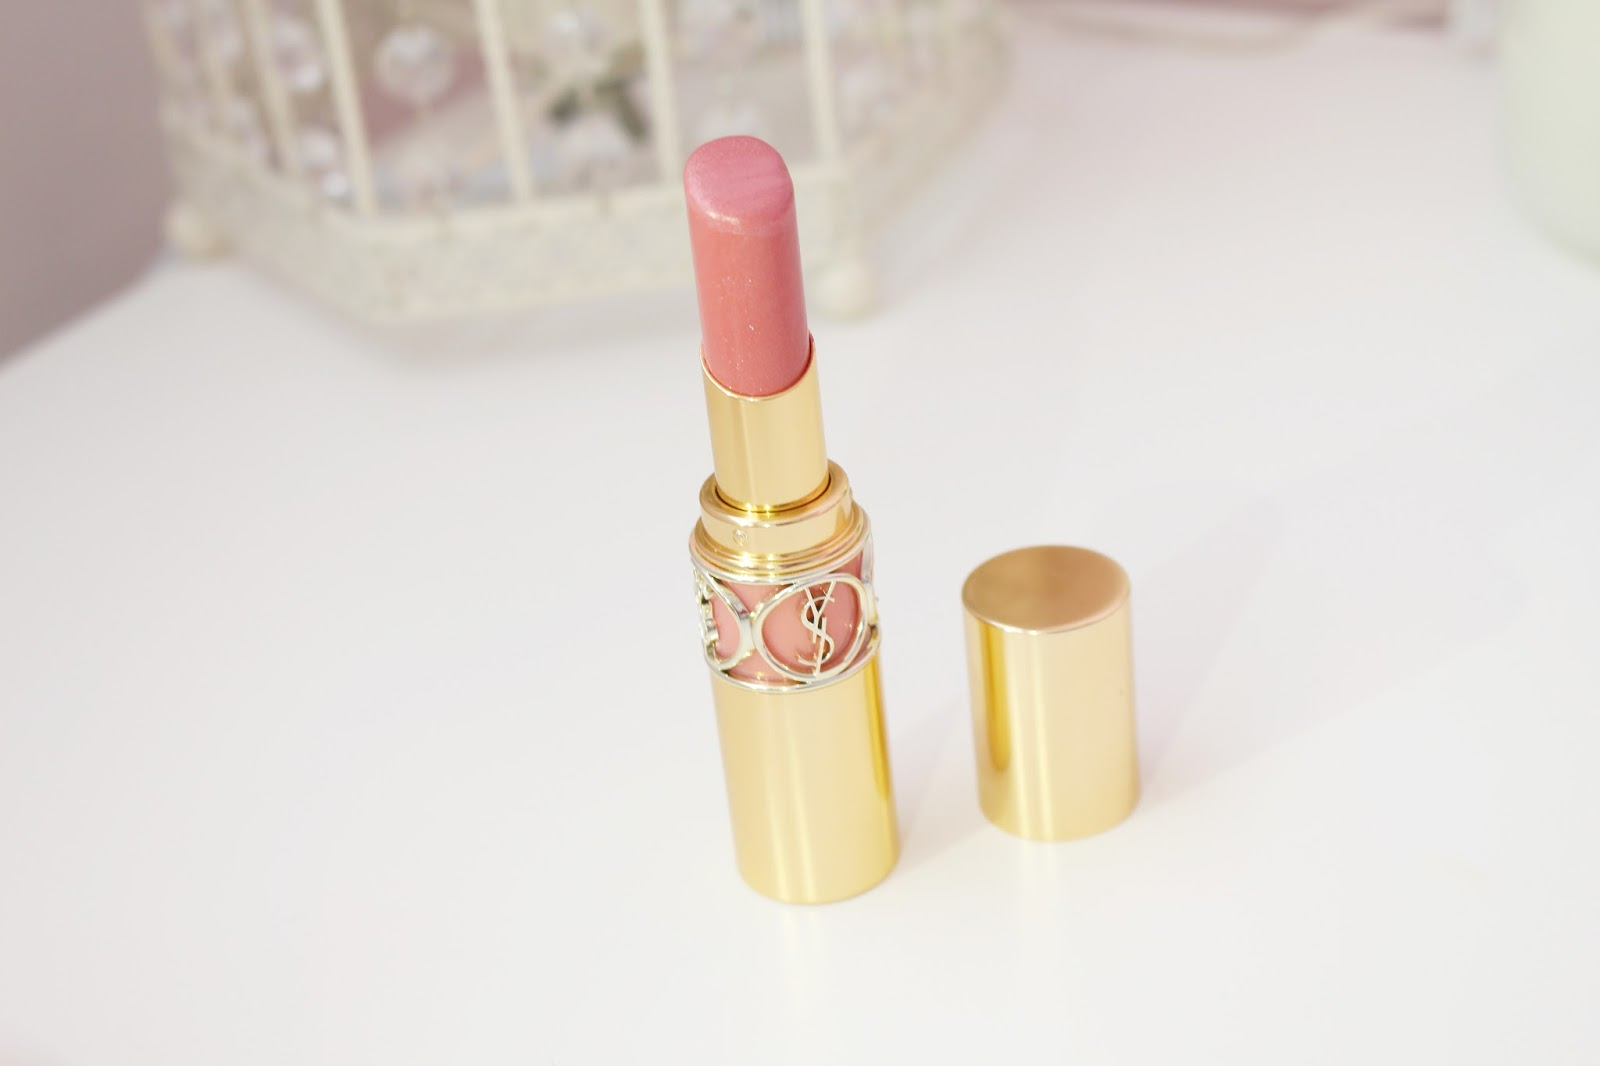 YSL Rouge Volupté Shine Lipstick in 08 Pink in Confidence